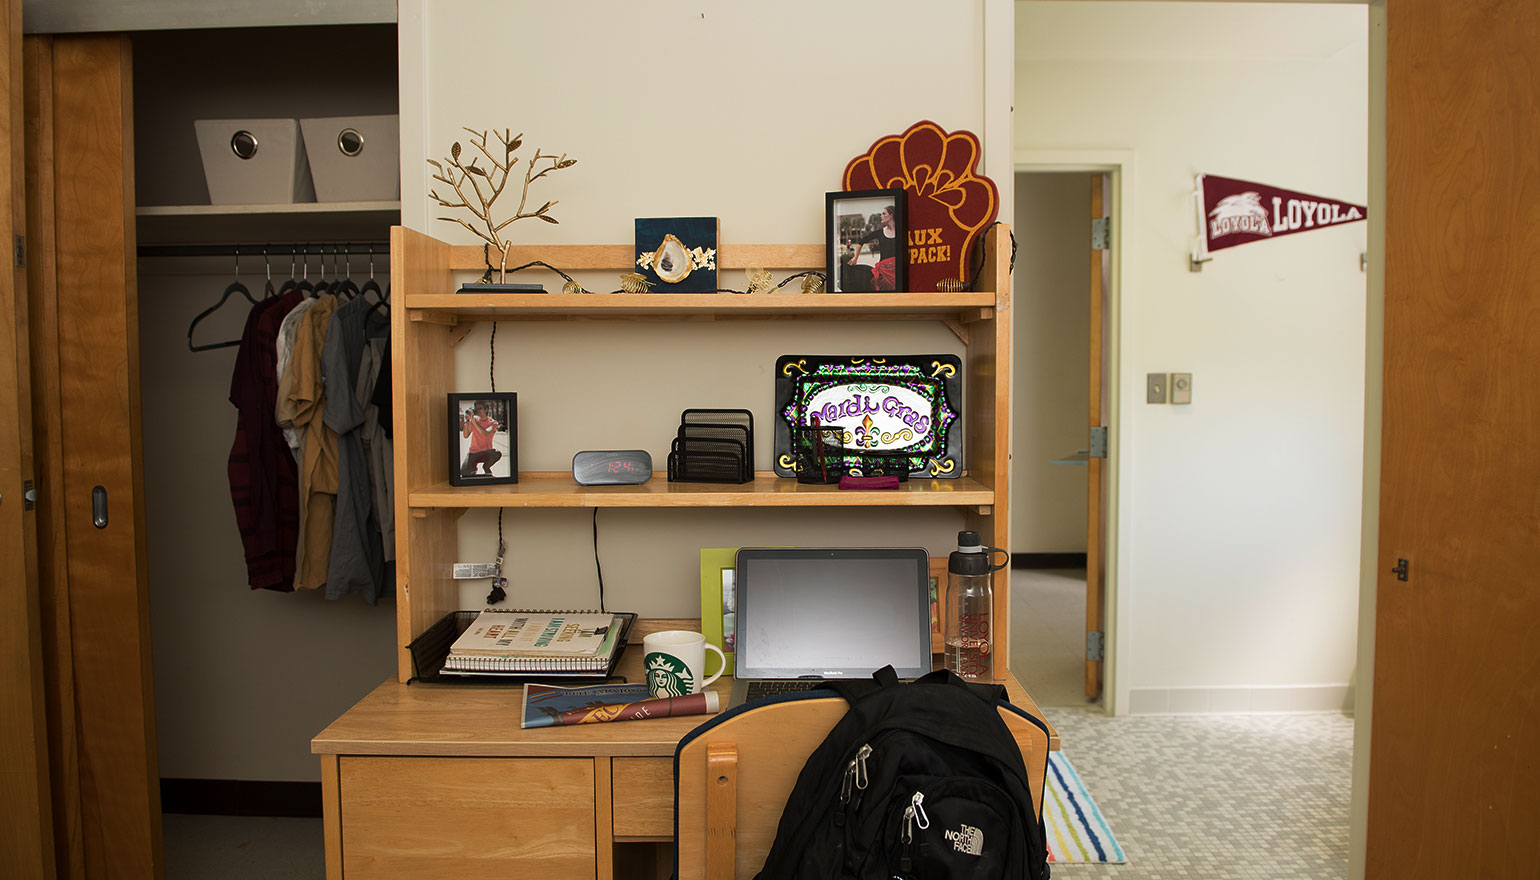 View of desk space and hallway in dorm